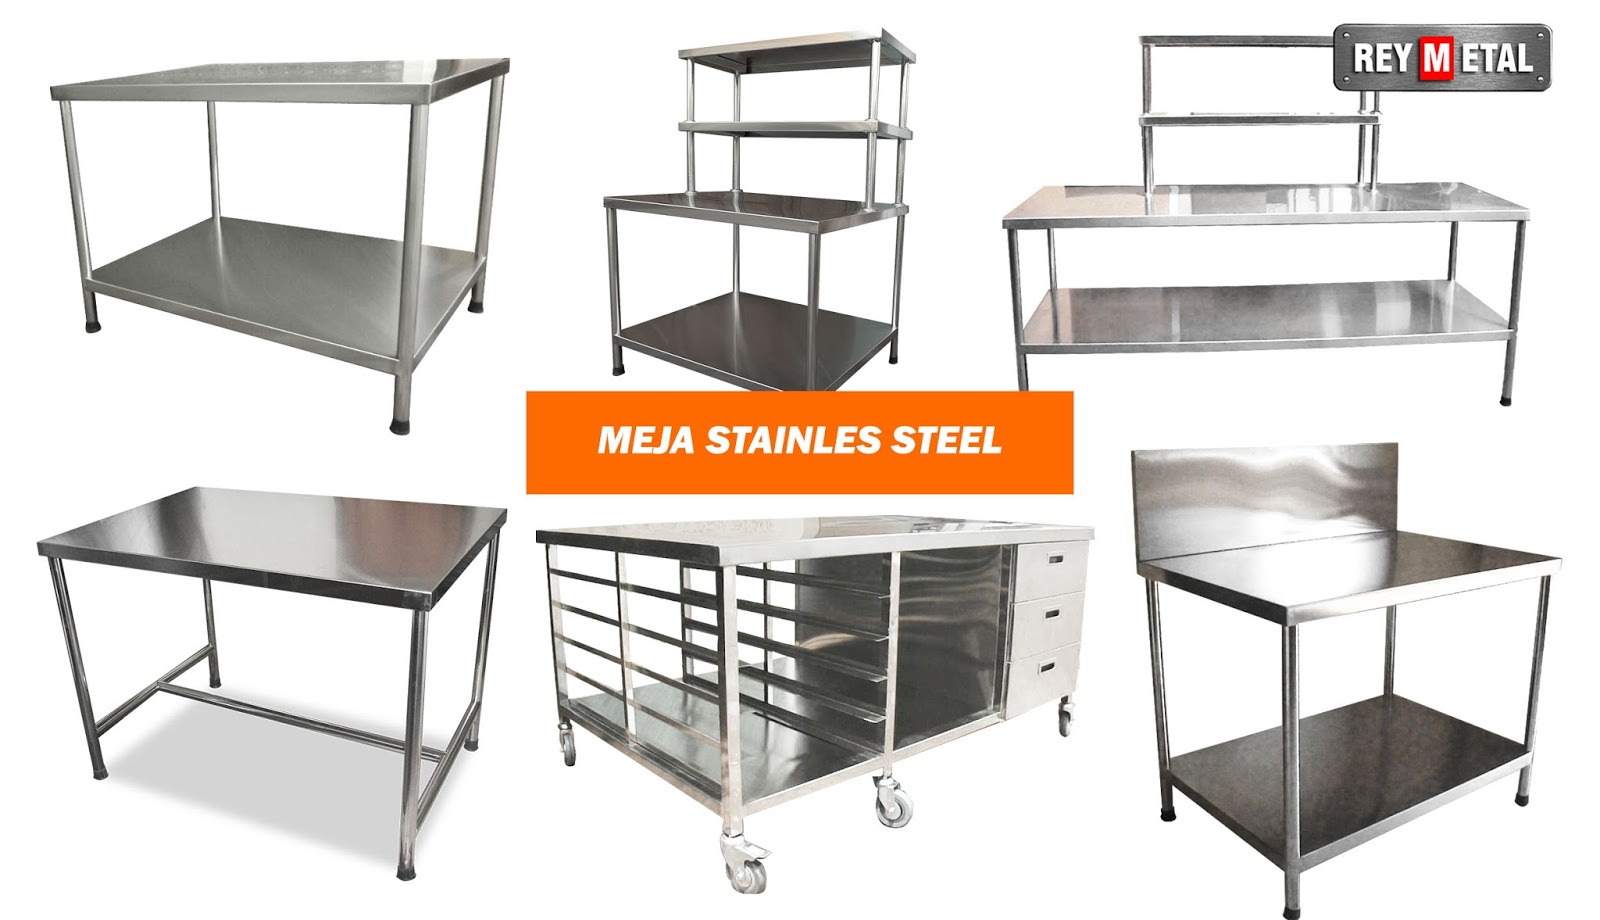 Kitchen set stainless steel di jogja for Harga kitchen set stainless steel